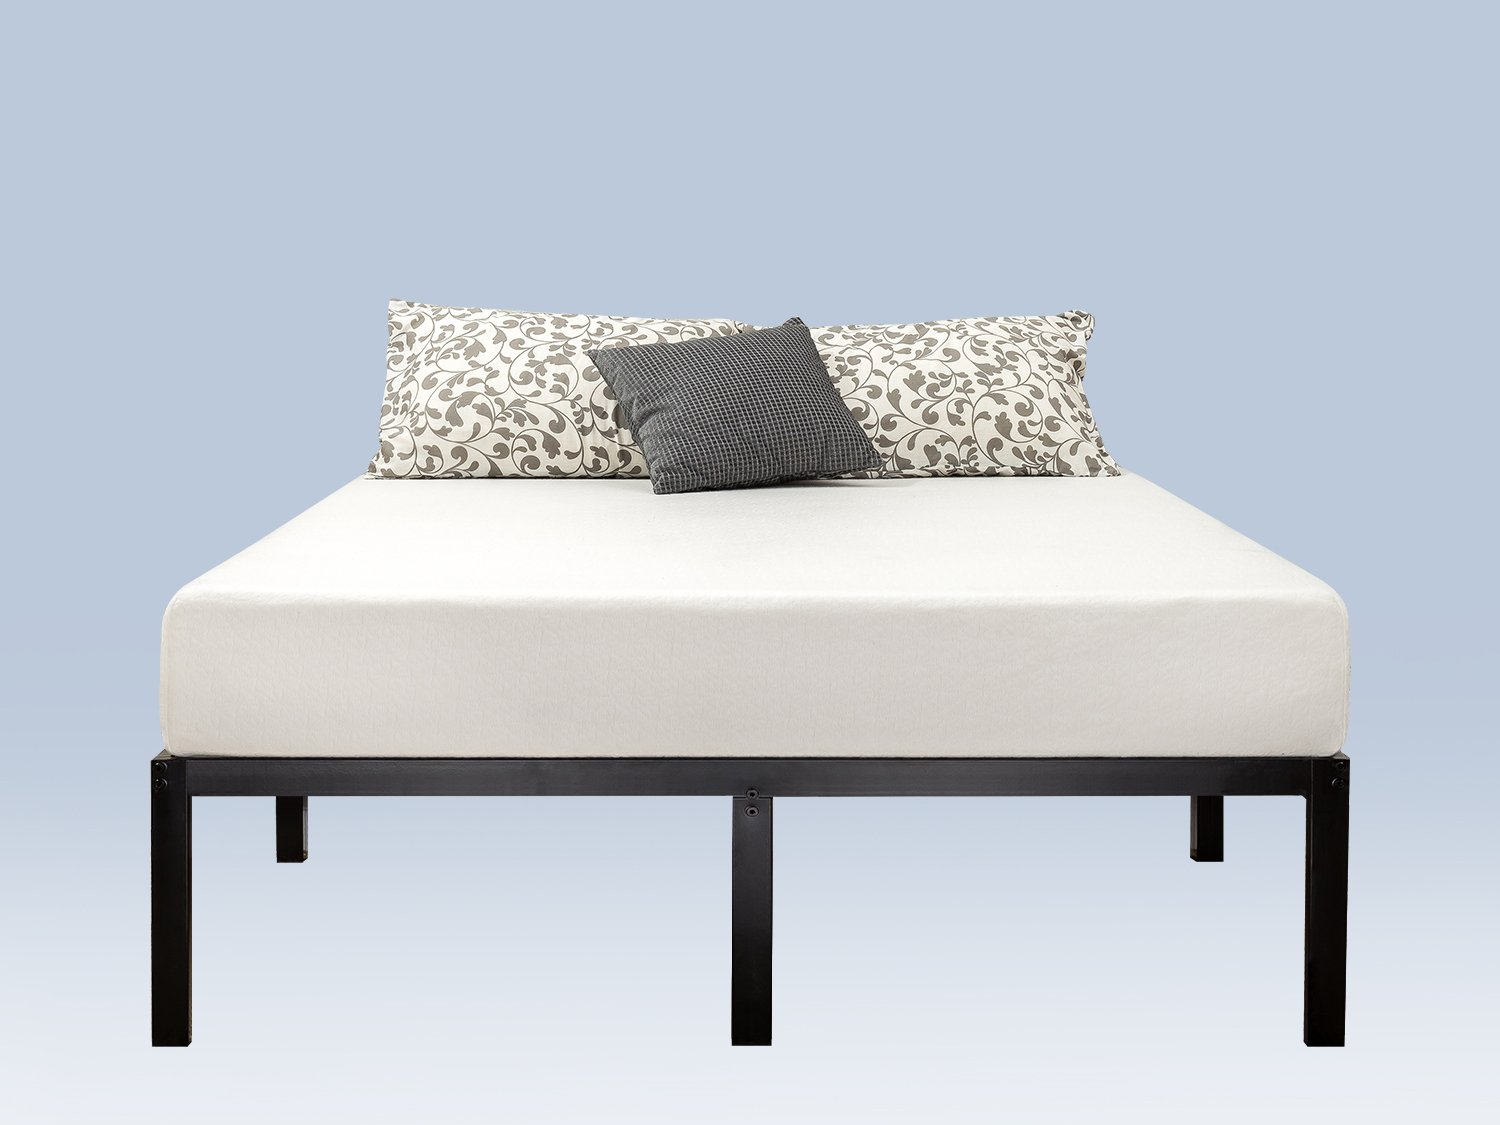 Zinus Yelena 14 Inch Classic Metal Platform Bed Frame with Steel Slat Support / Mattress Foundation, Queen by Zinus